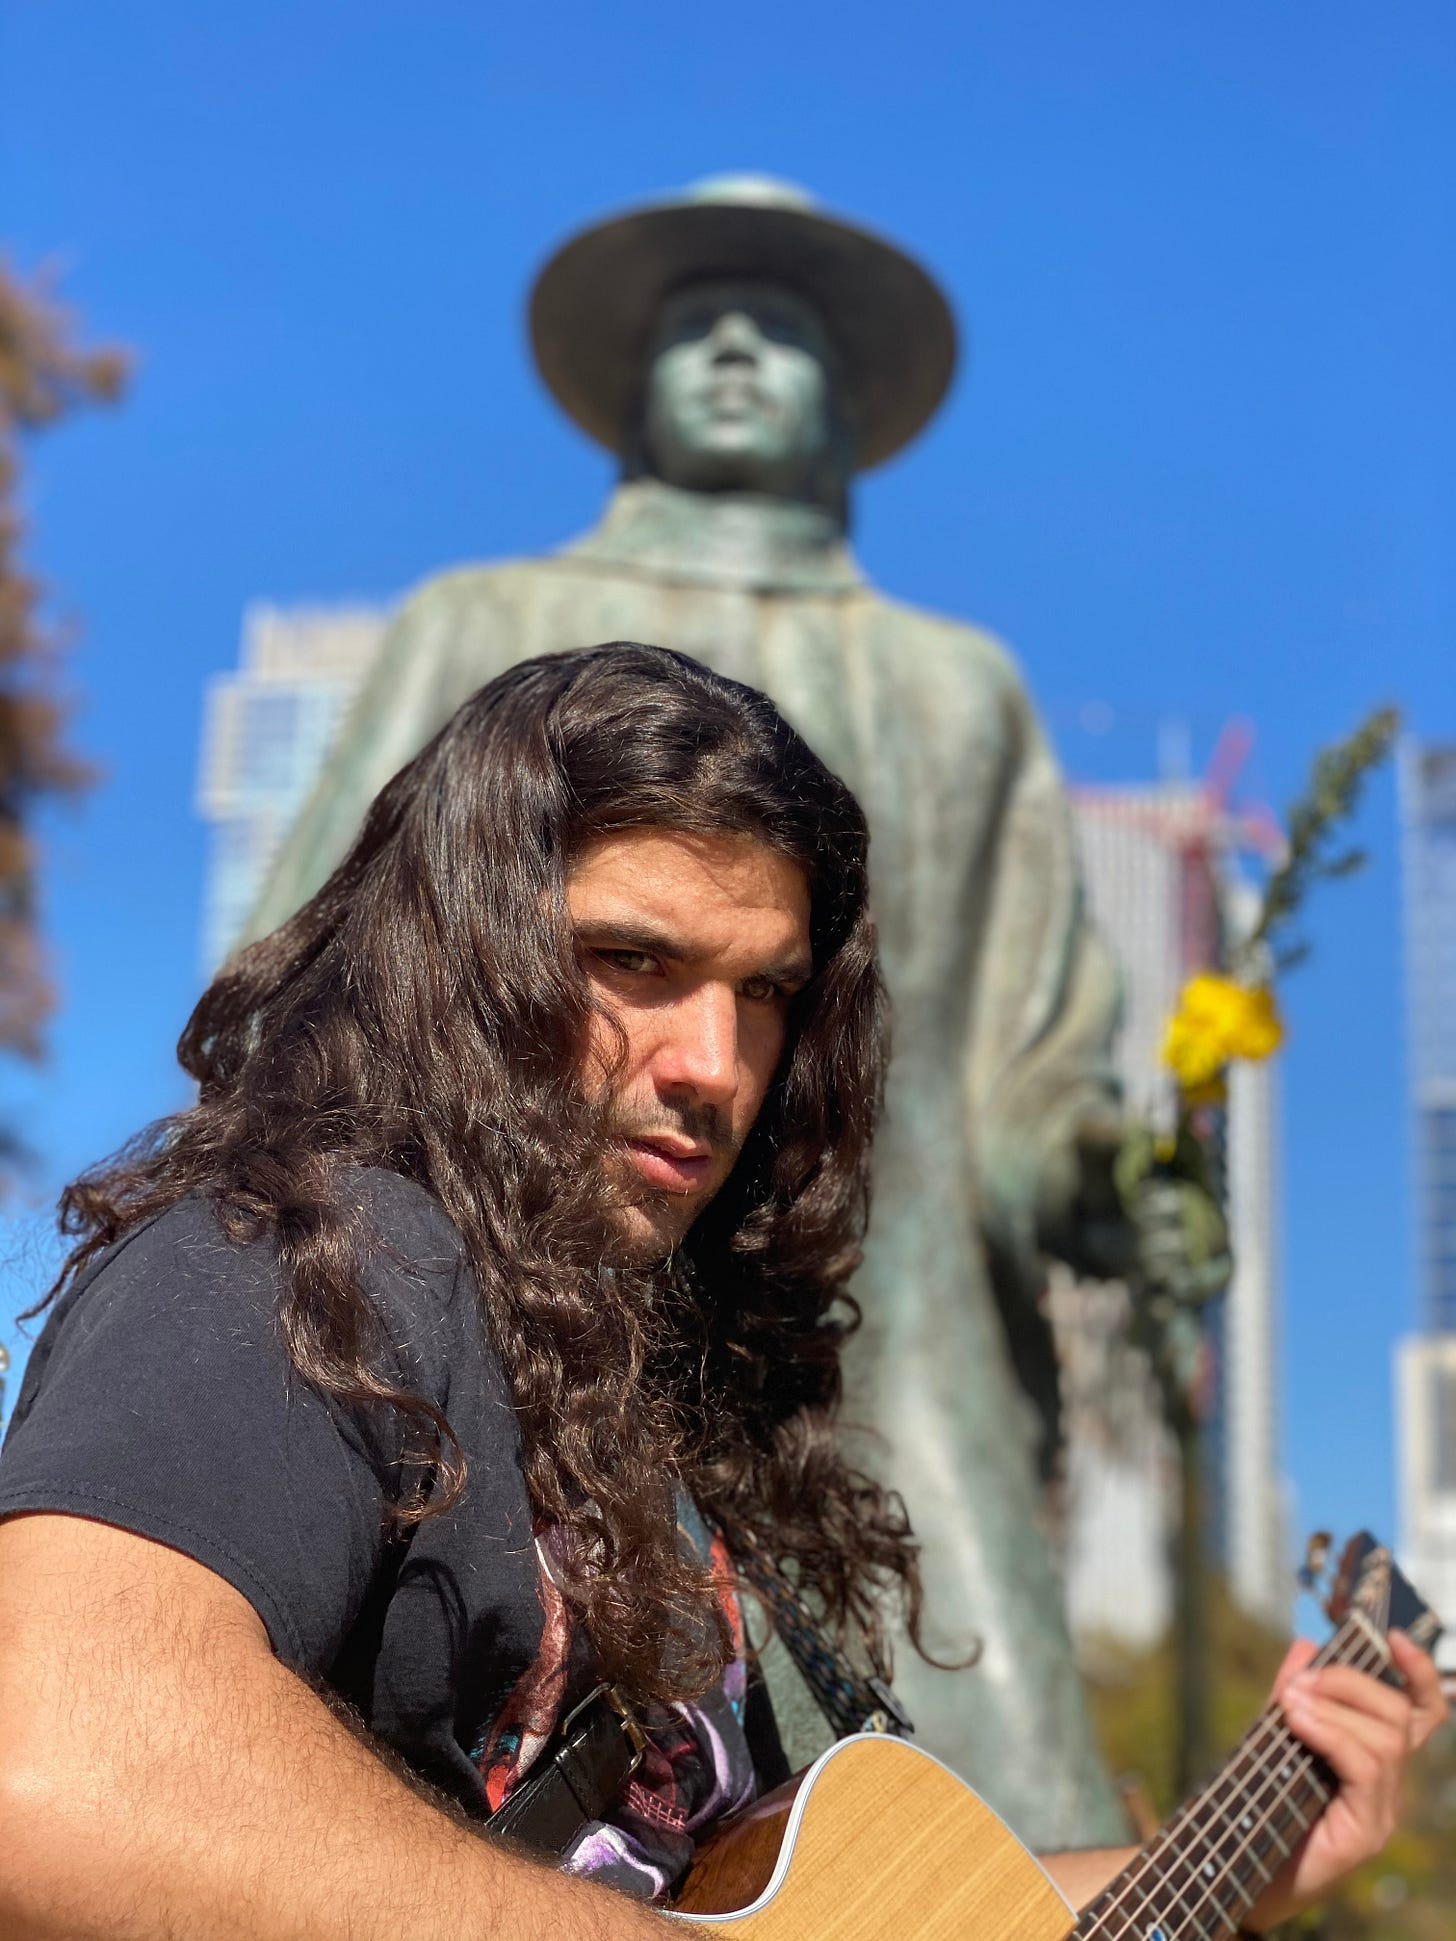 anthony standing so serious with his hear down and shining so beautifully and statue of stevie ray vaughn is behind his head blurred out